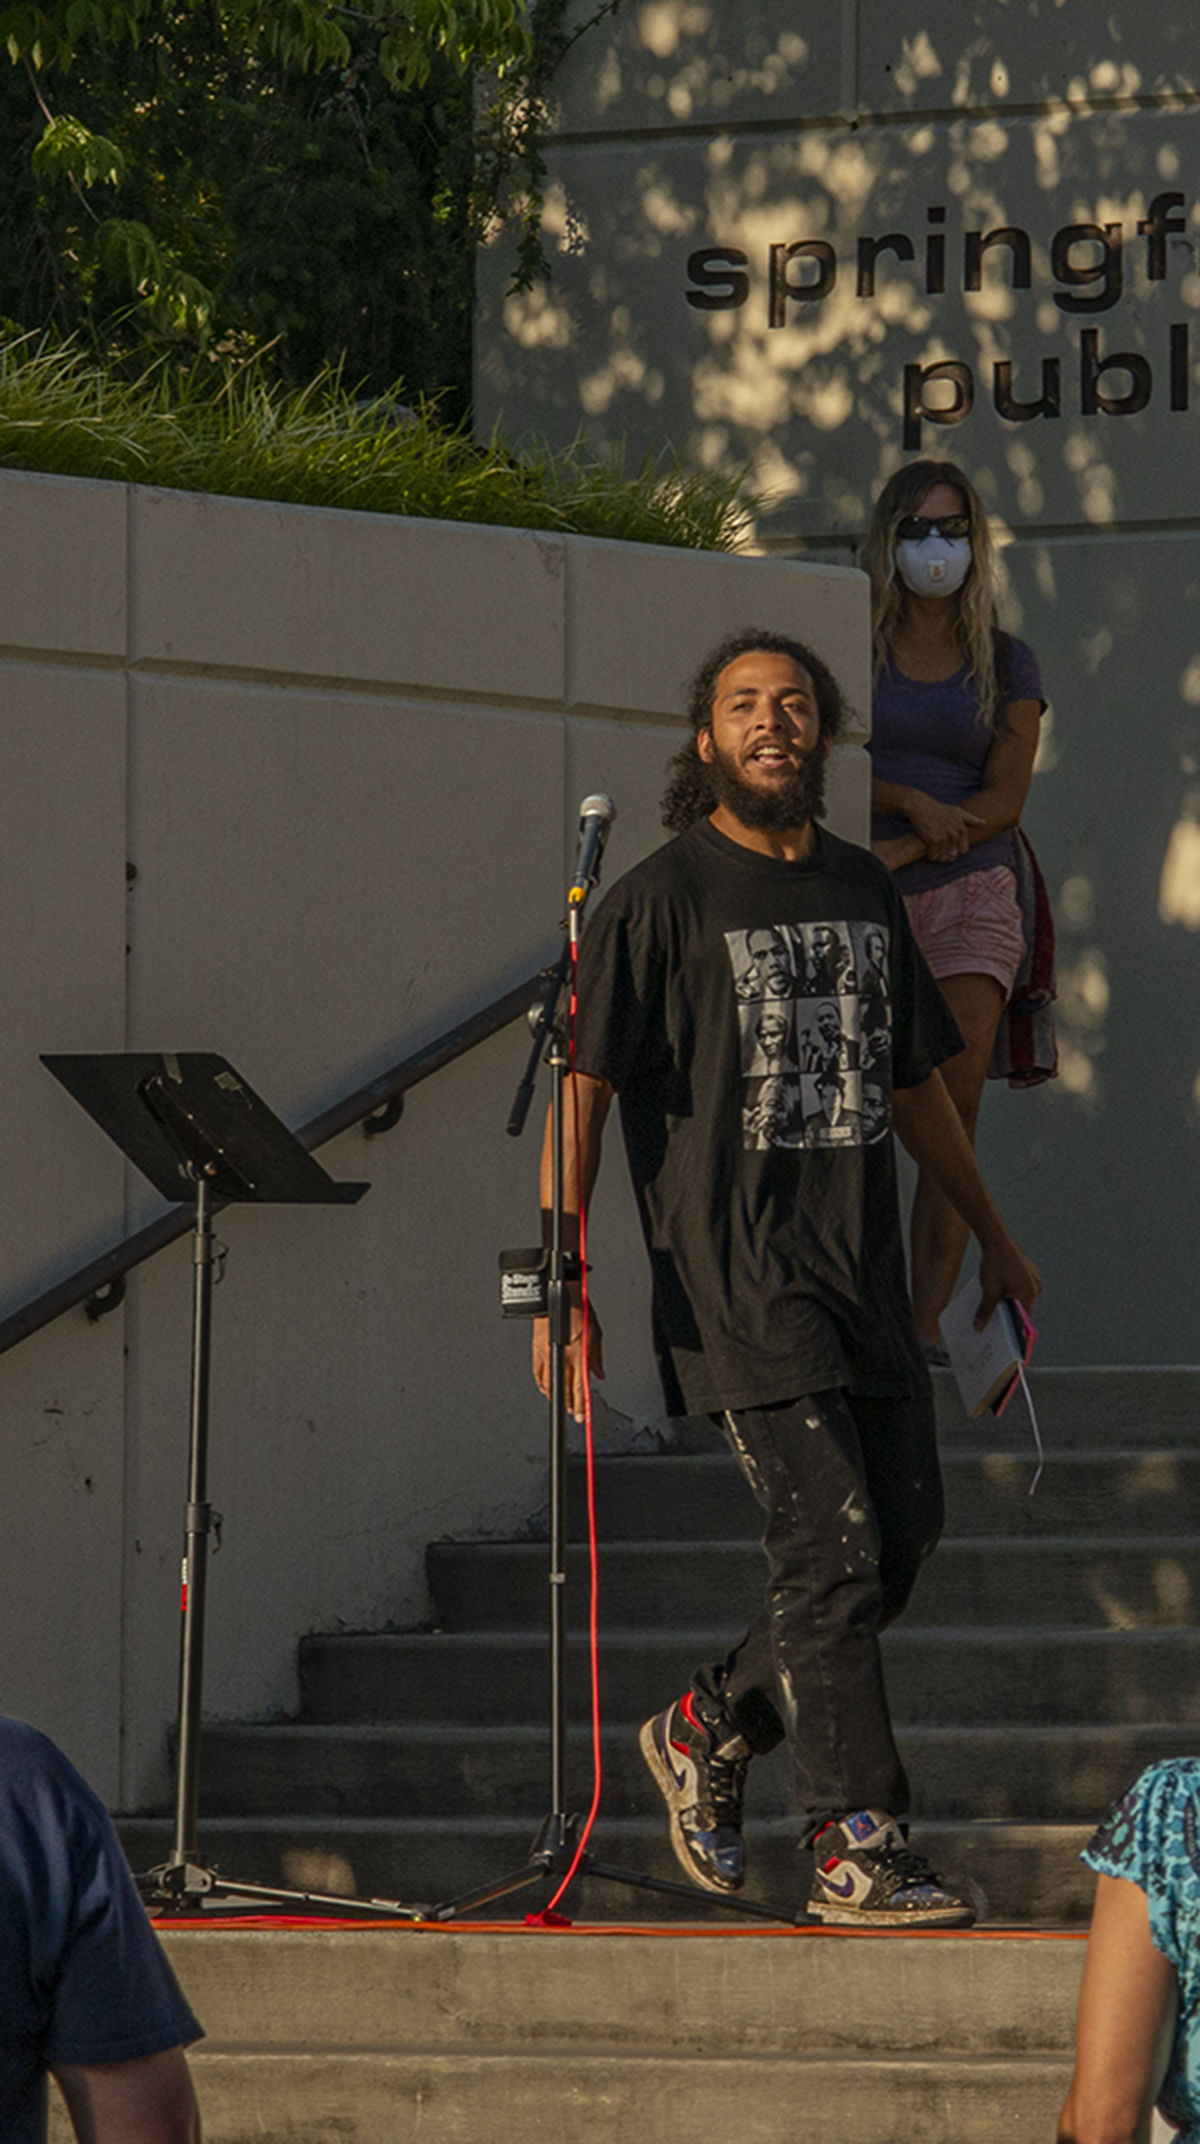 Marcus Edwards, the main speaker of the evening, approaches the mic after addressing the small crowd of counterprotesters across the street. About 250 people gathered at the Springfield, Oregon, library for what was billed as an All Lives Matter rally Friday at 7 p.m. About a dozen counter protesters also attended. The event was mostly peaceful, although a couple of minor scuffles broke out and one man was taken into custody by the Springfield police. By 9:30 p.m. both the protesters and the counter protesters dispersed. Photo by Jeremy Williams